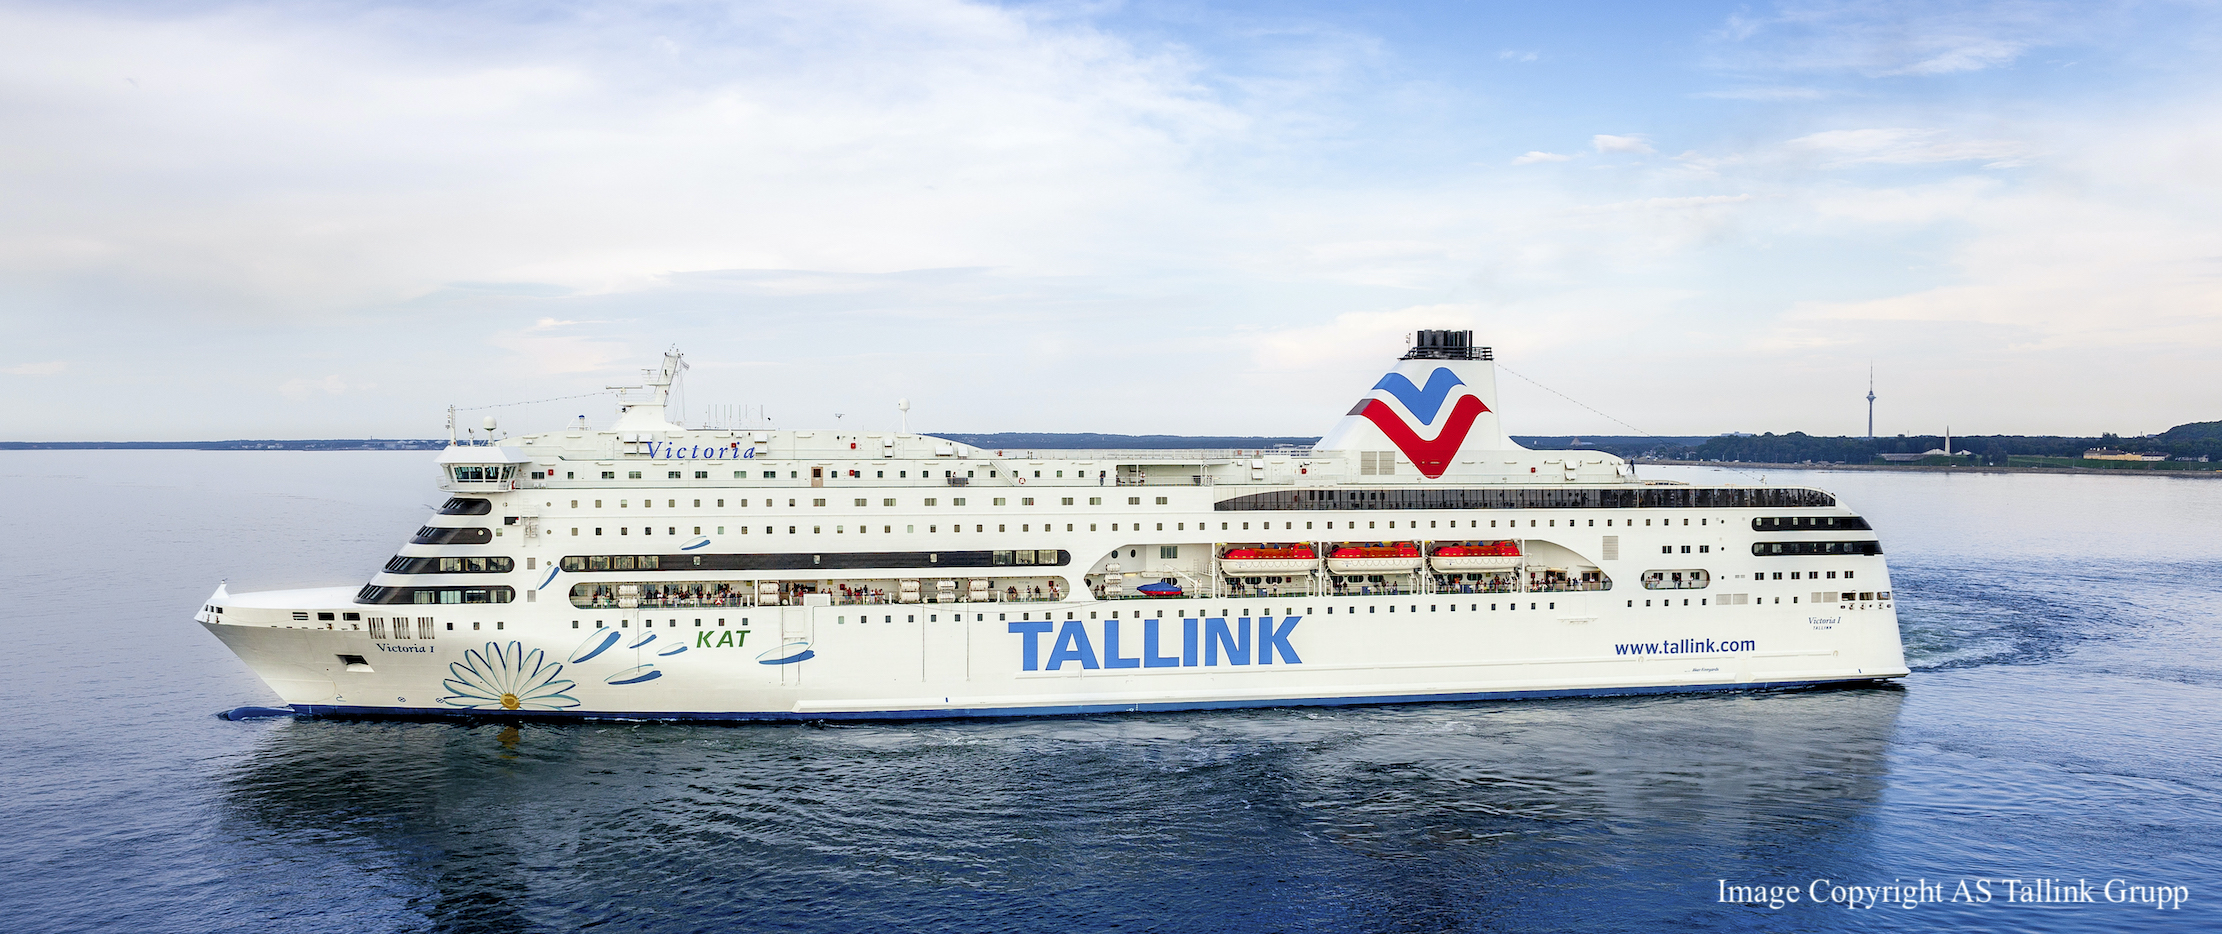 Photo of Tallink Silja - Victoria I ship